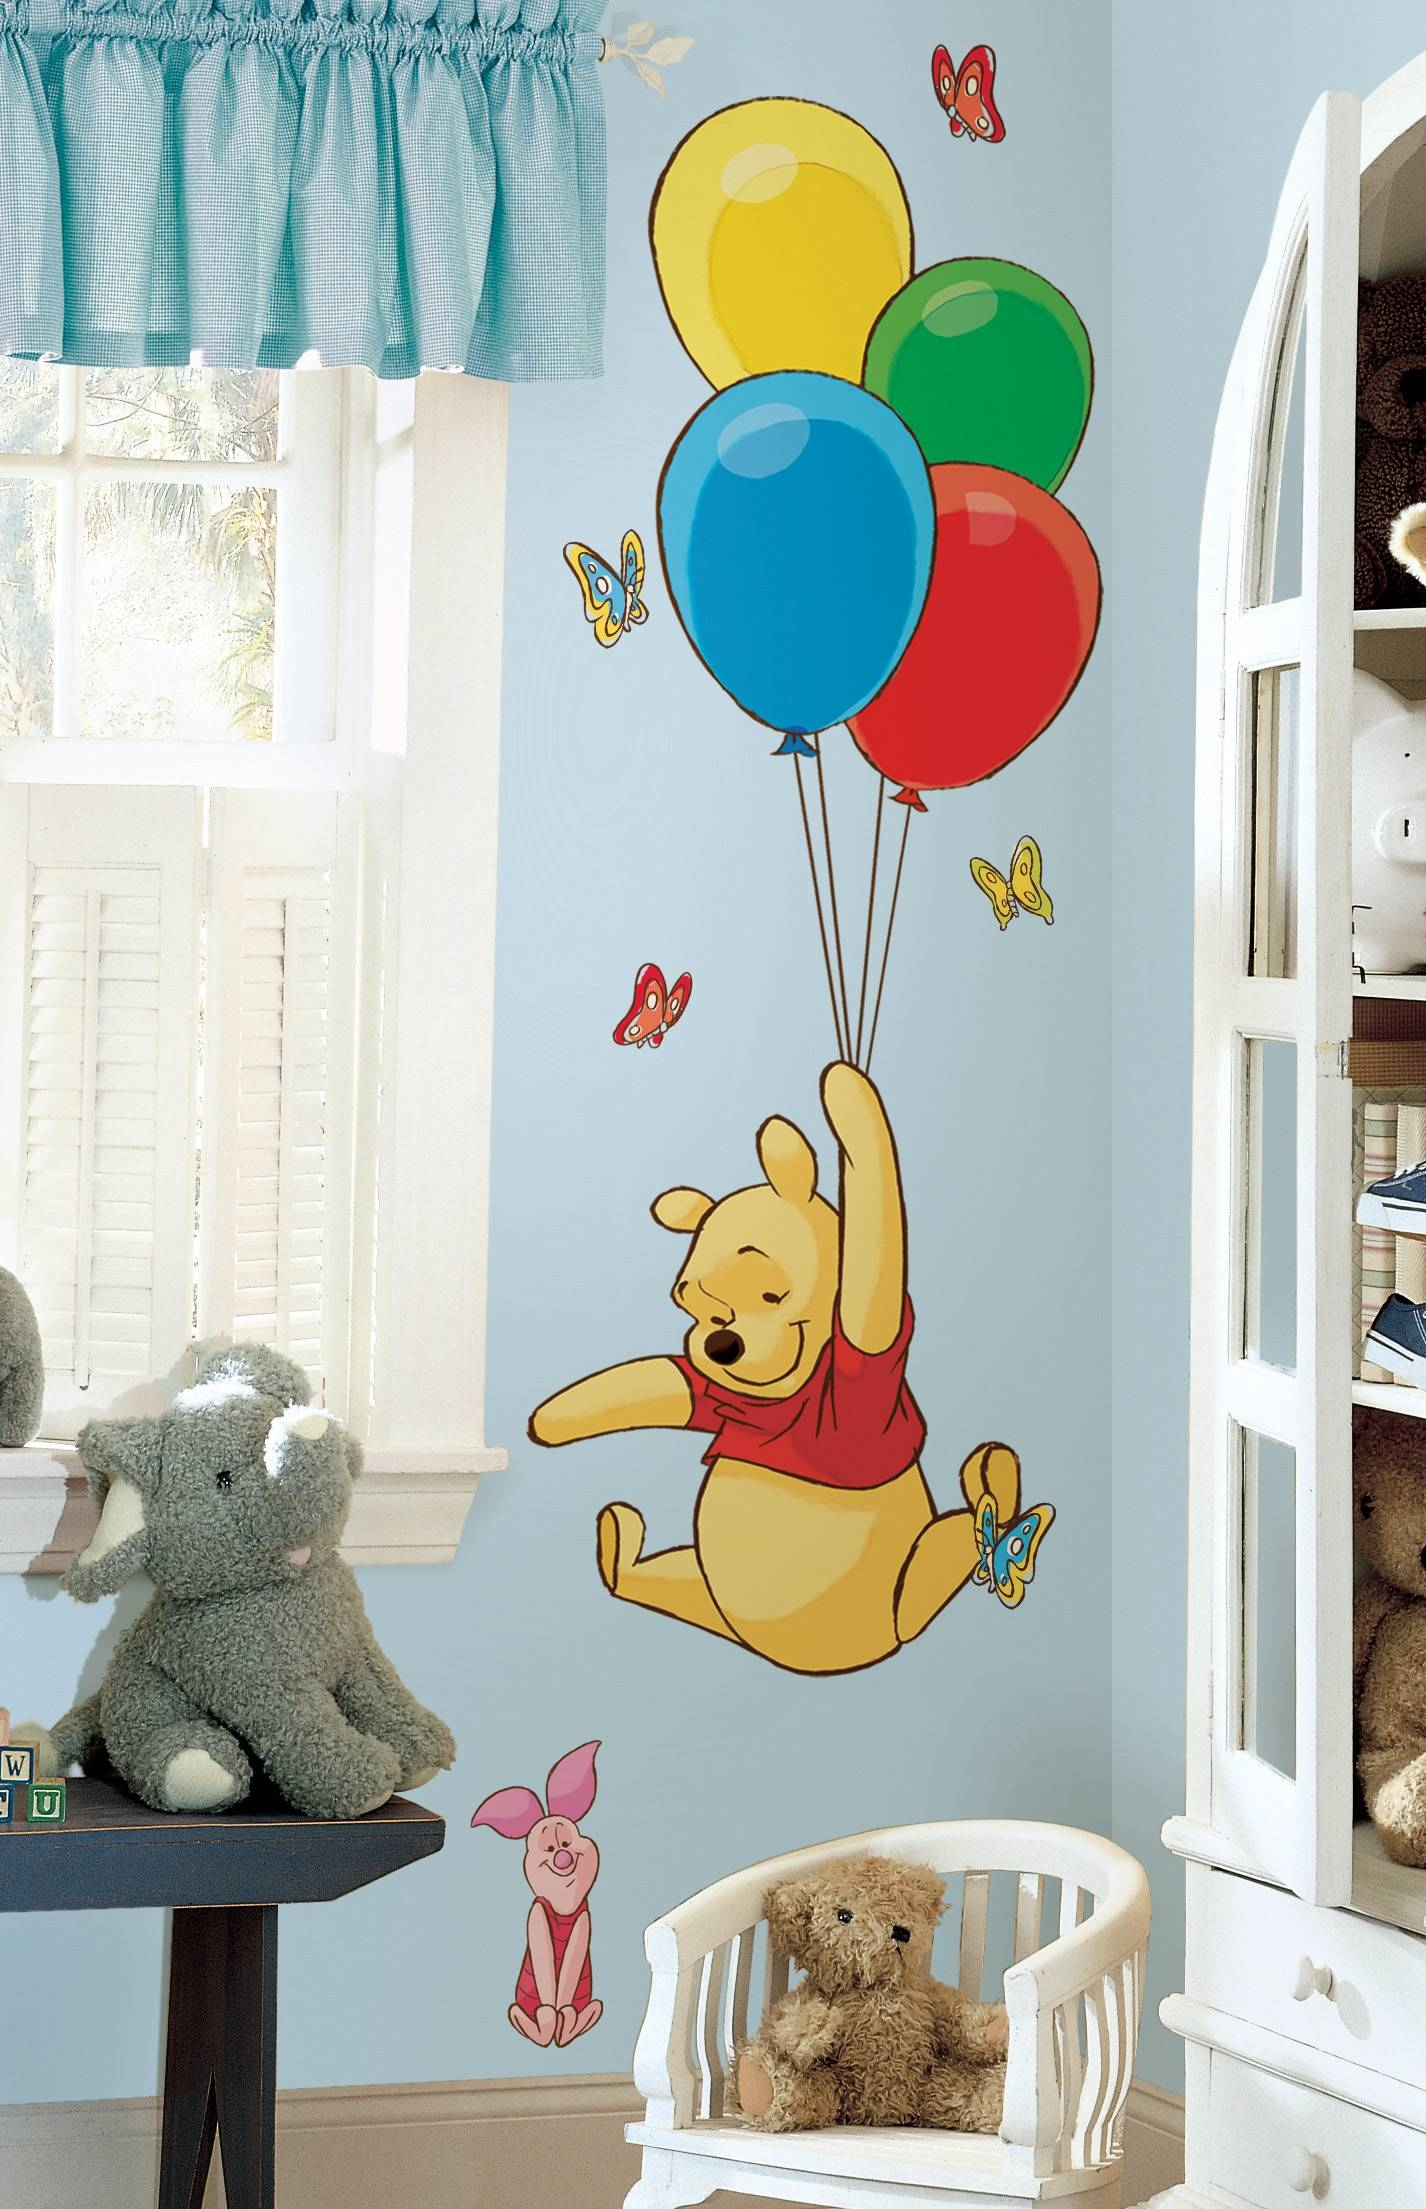 Brilliant Decoration Winnie The Pooh Wall Art Absolutely Design In 2017 Preschool Wall Art (Gallery 30 of 30)